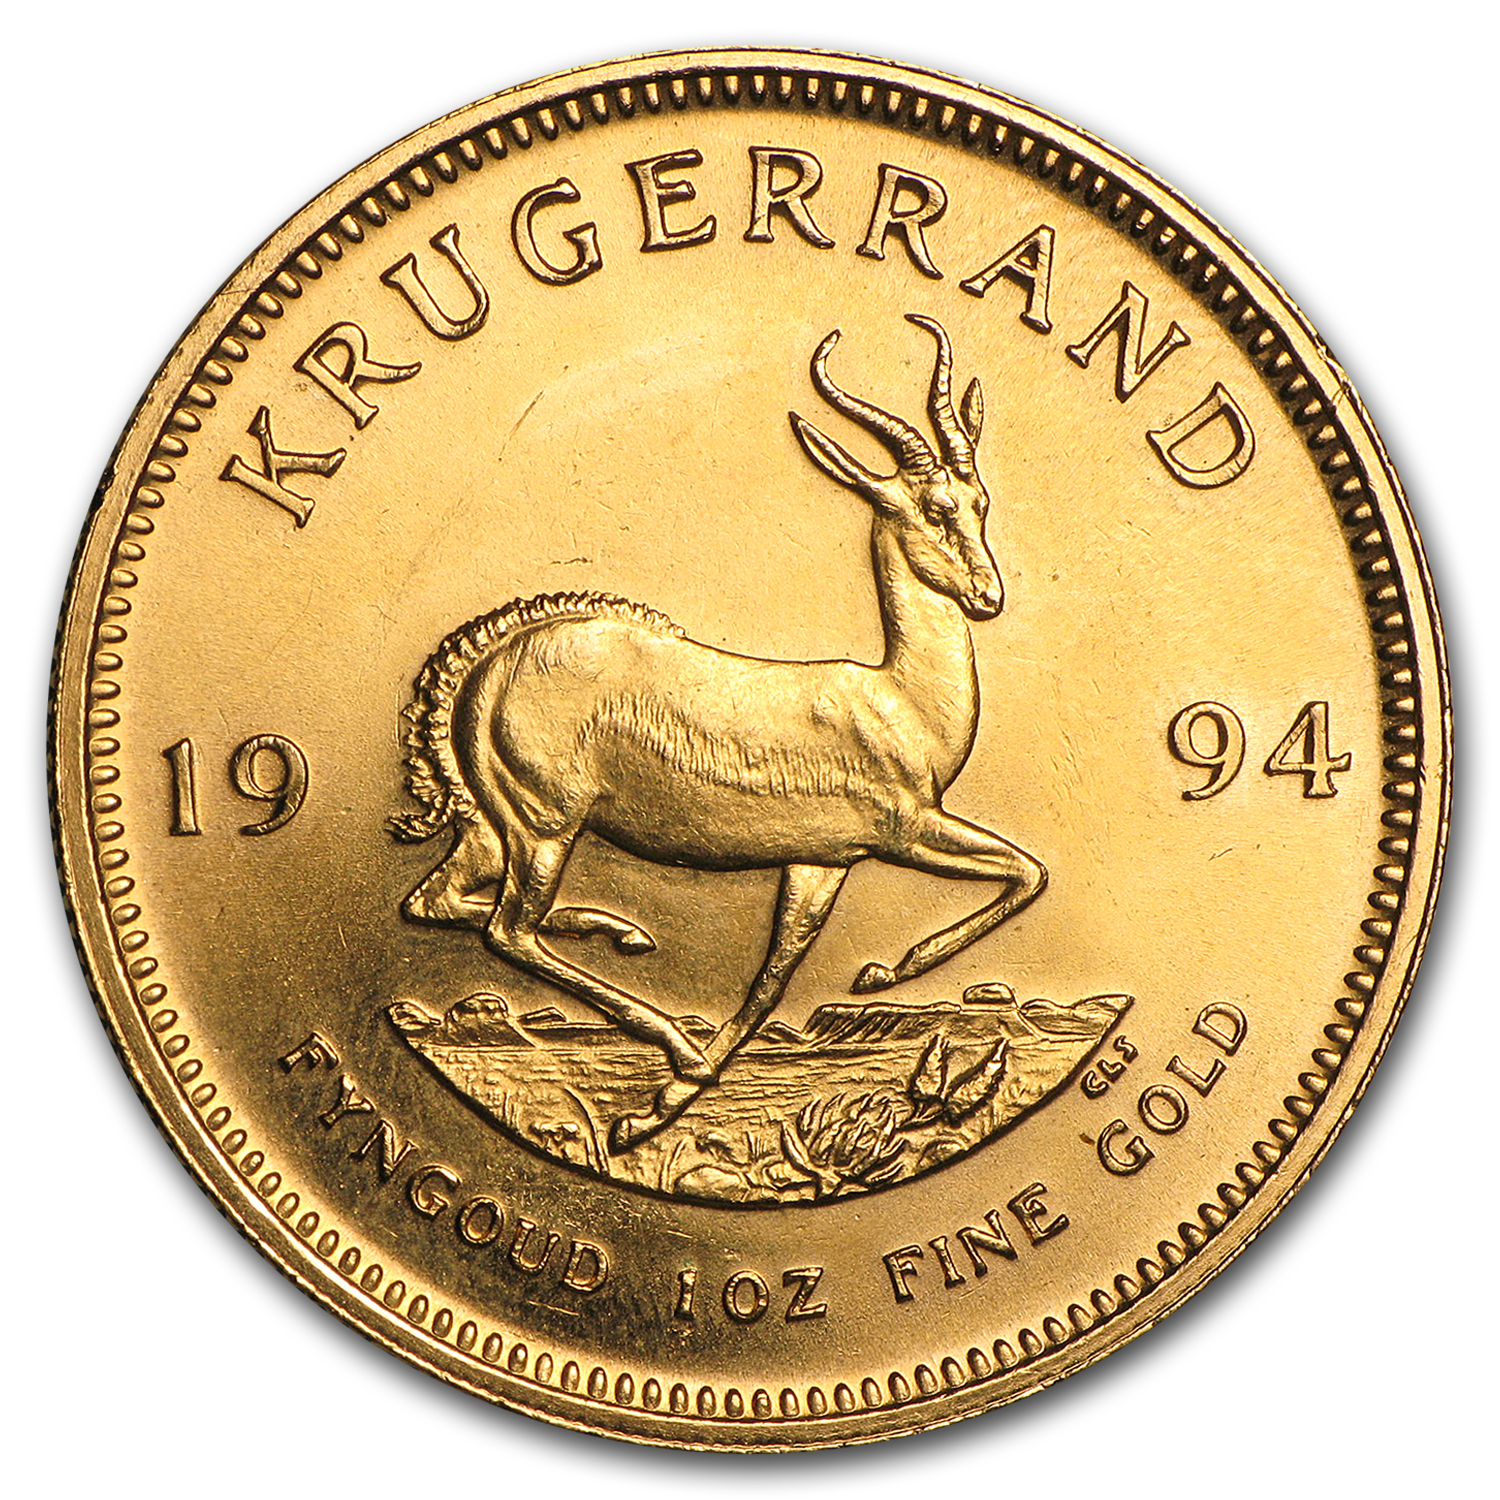 1994 1 oz Gold South African Krugerrand